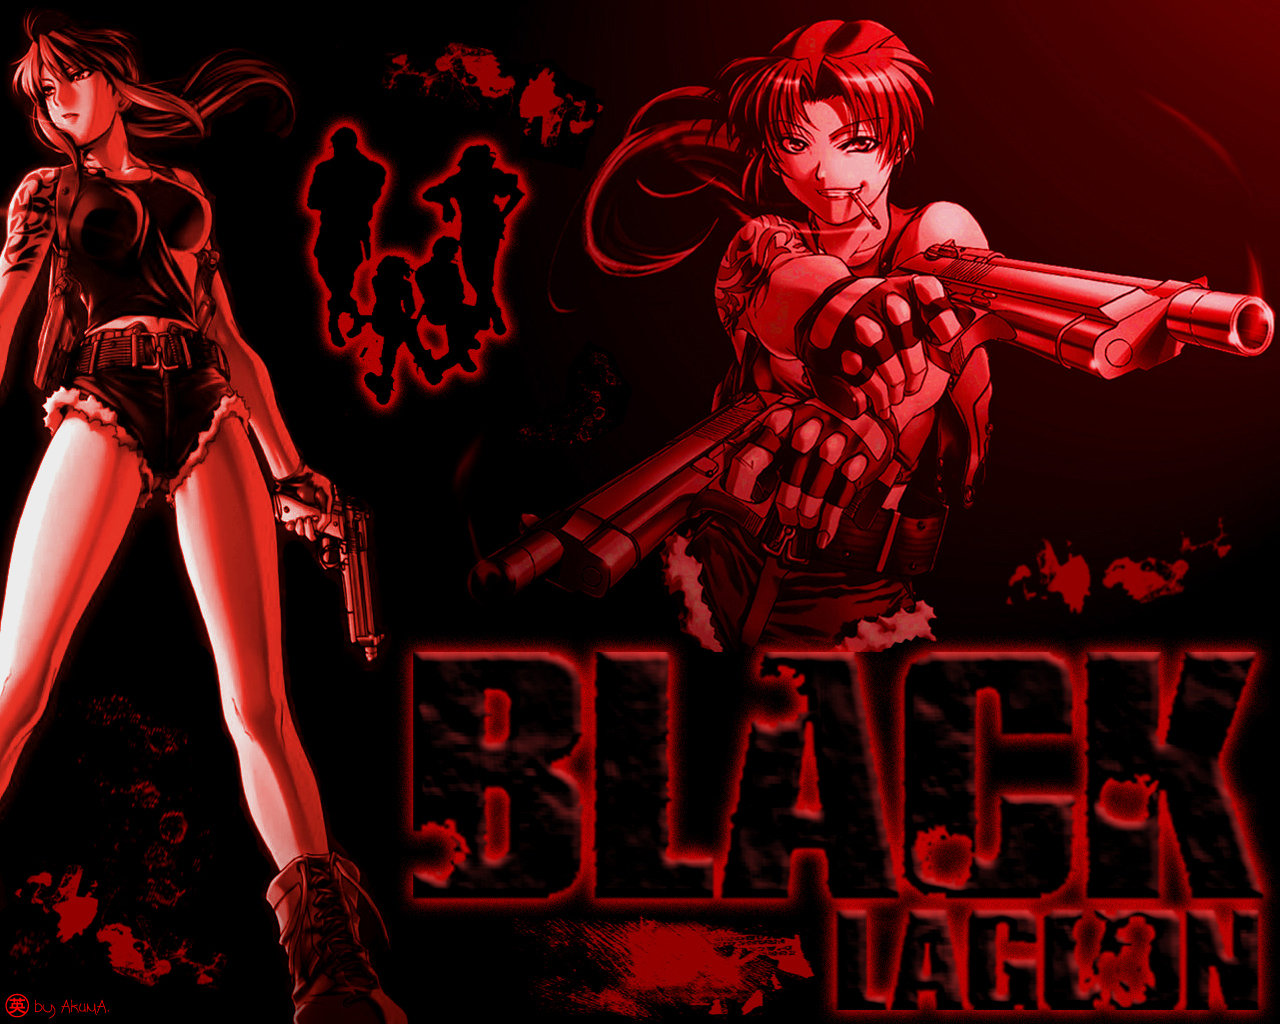 revy (black lagoon) wallpapers 1280x1024 desktop backgrounds